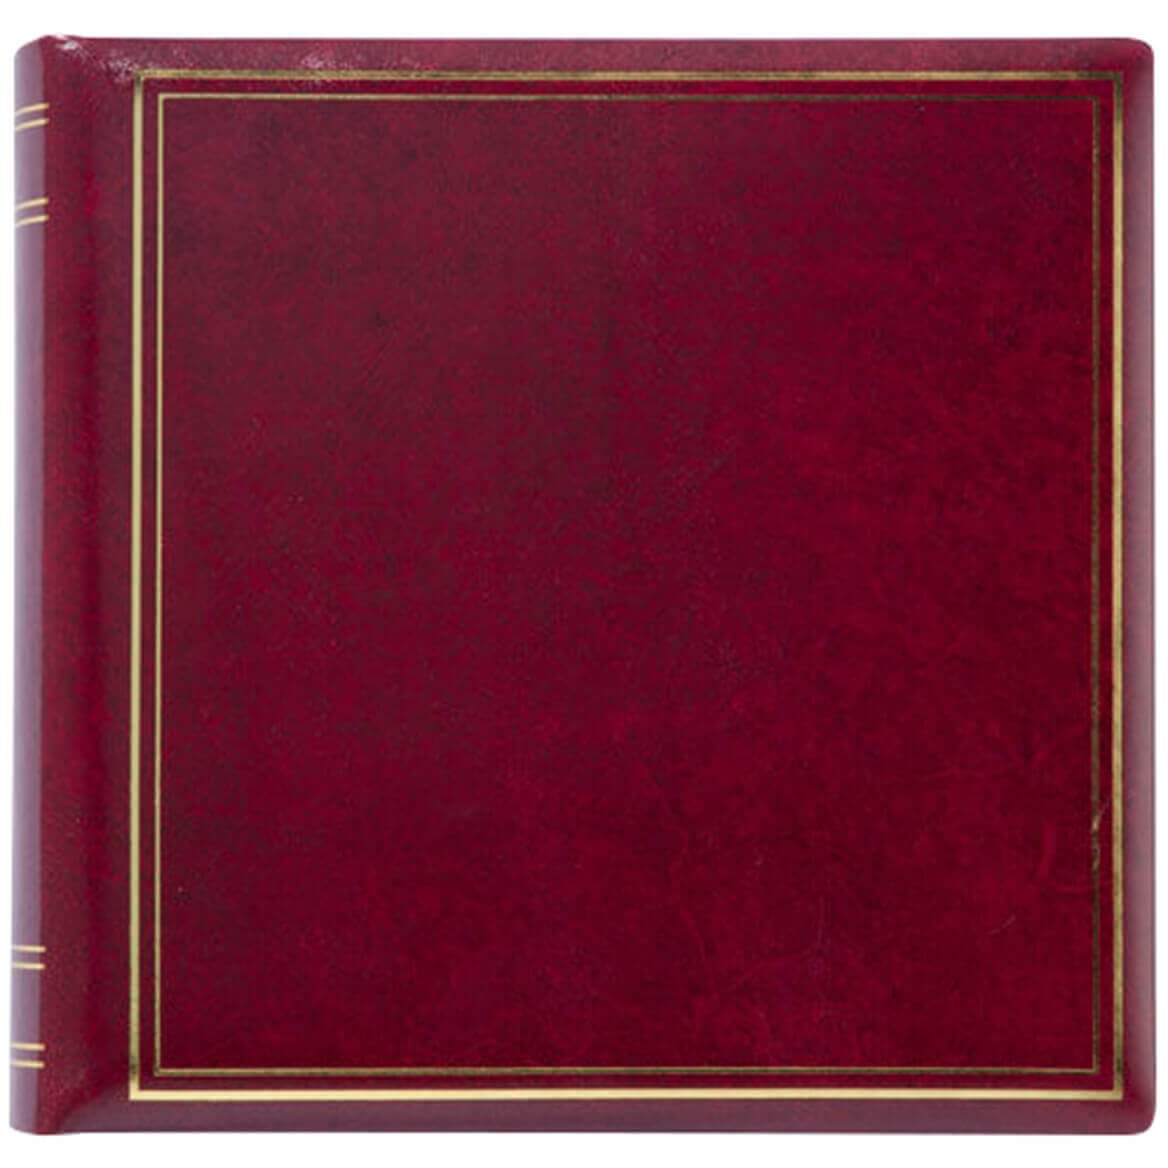 Exposures Personalized Presidential Oversize Album-Burgundy 1 Line